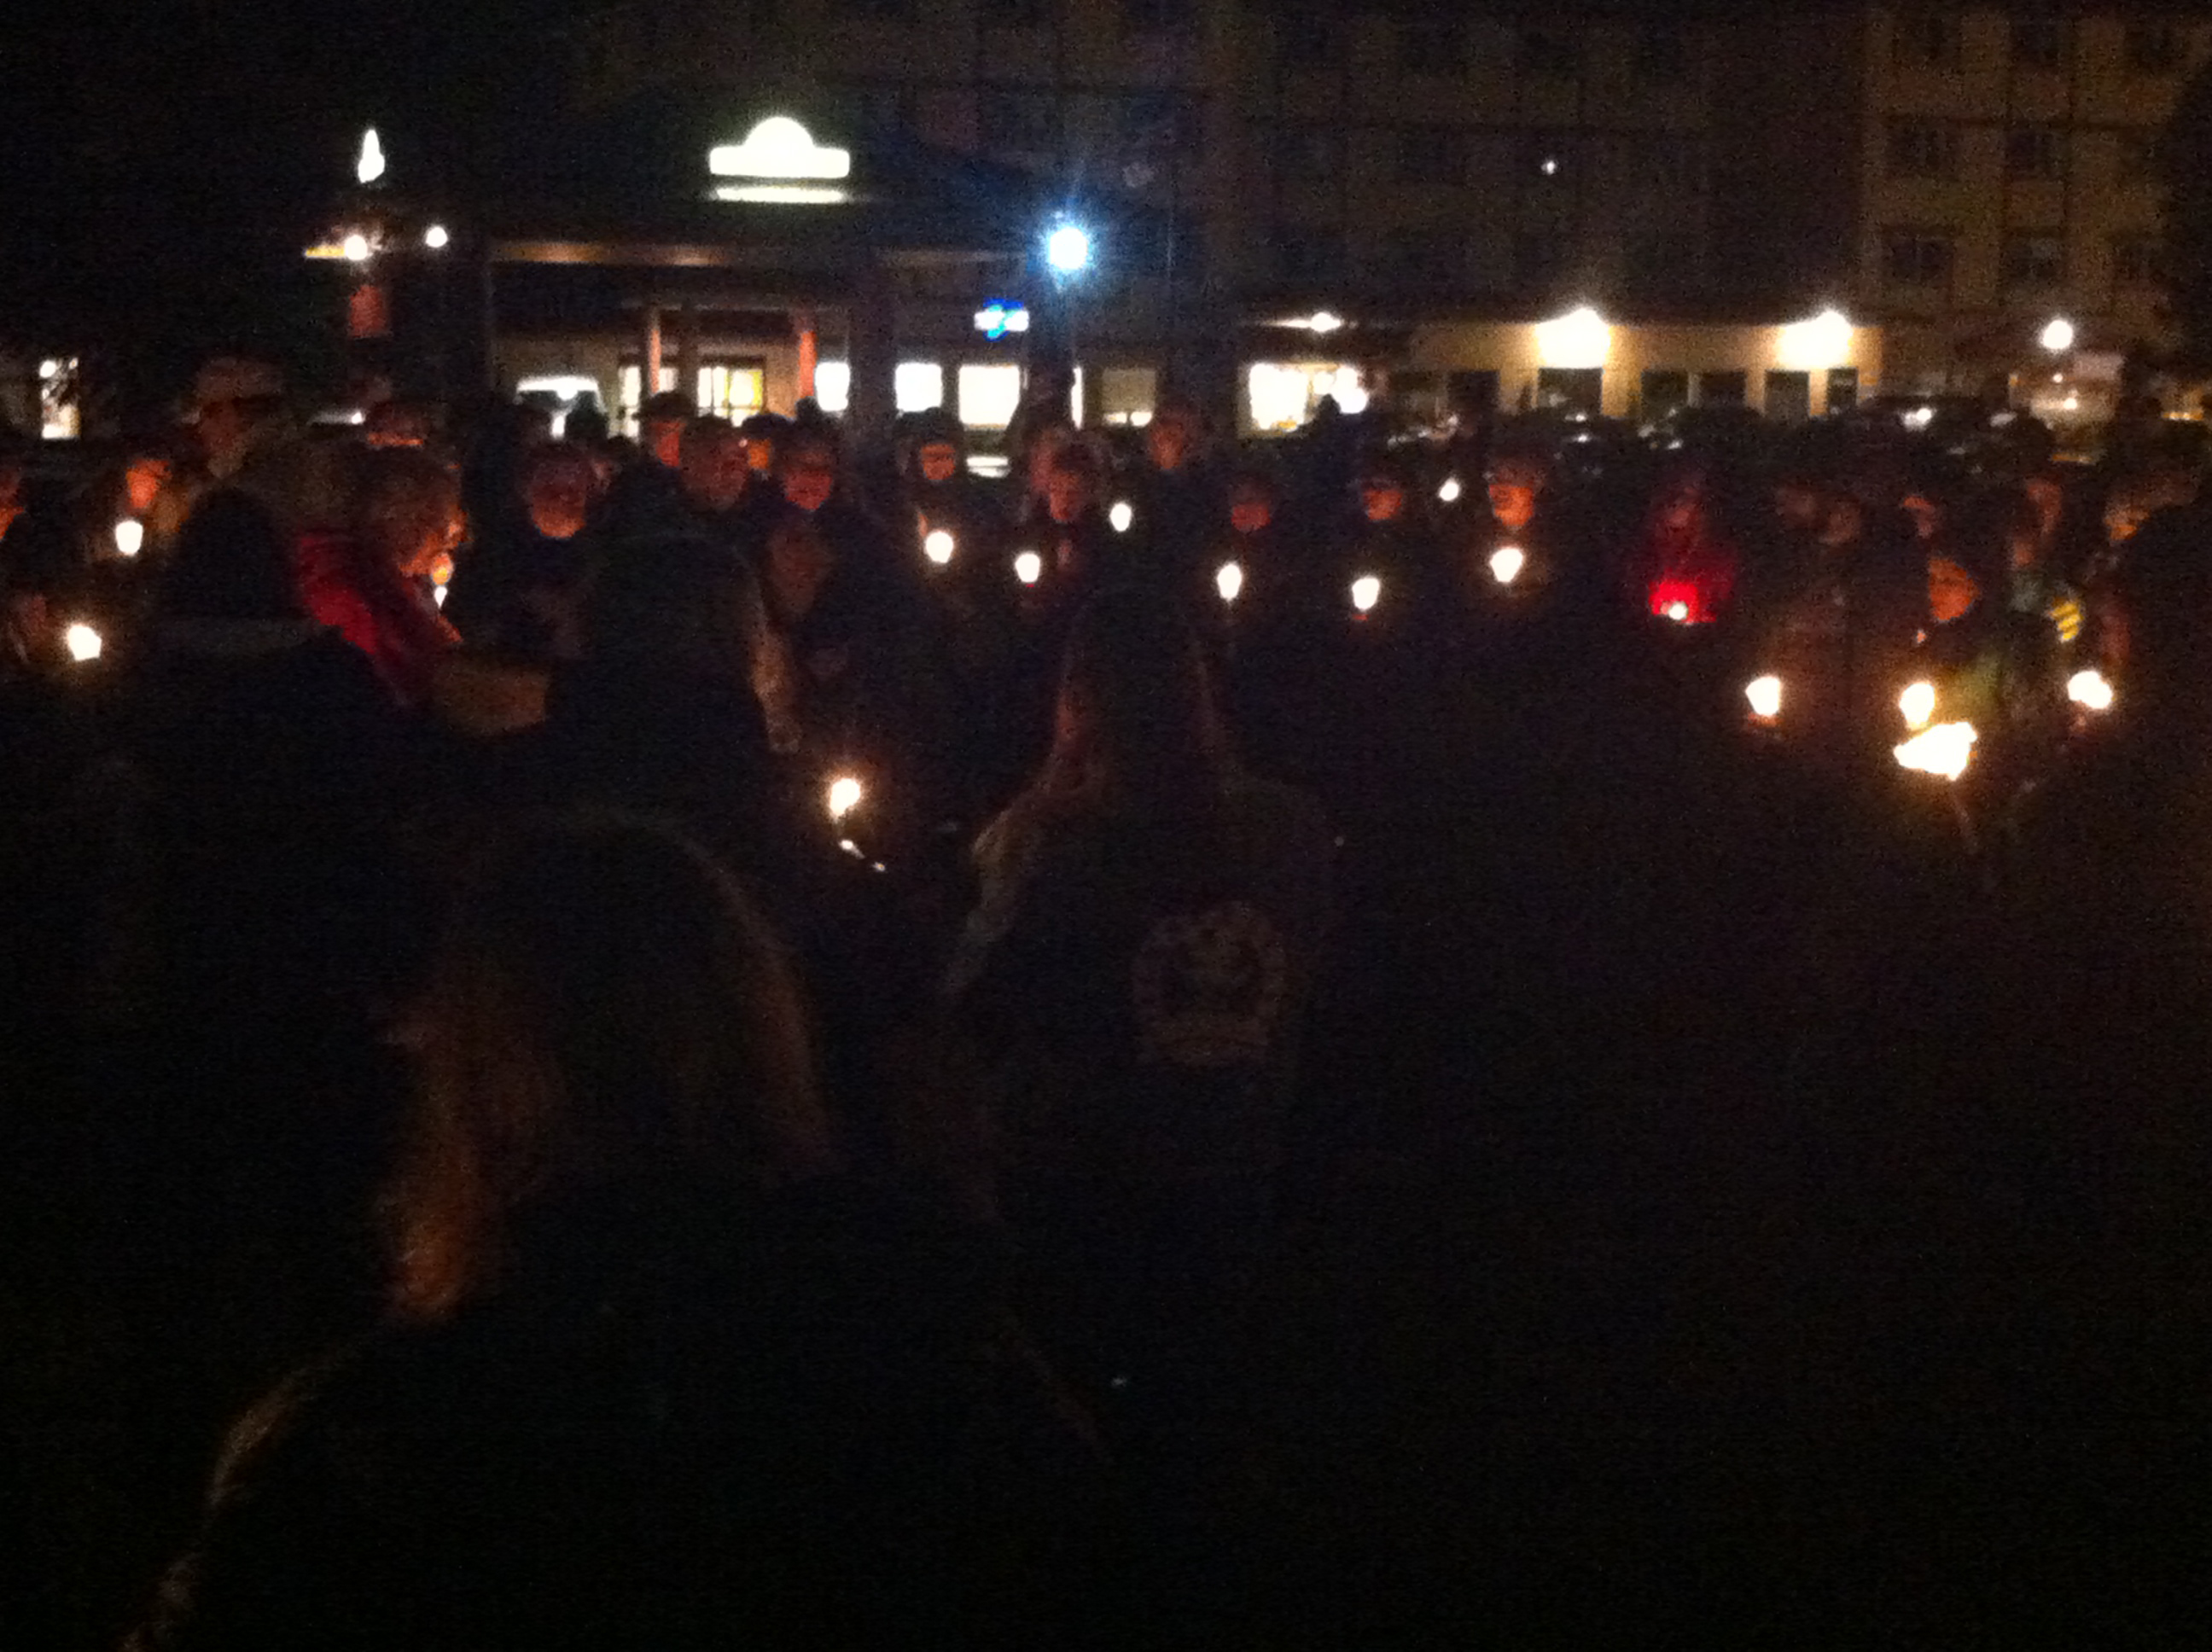 Candlelight vigil for Lael Grant's safe return